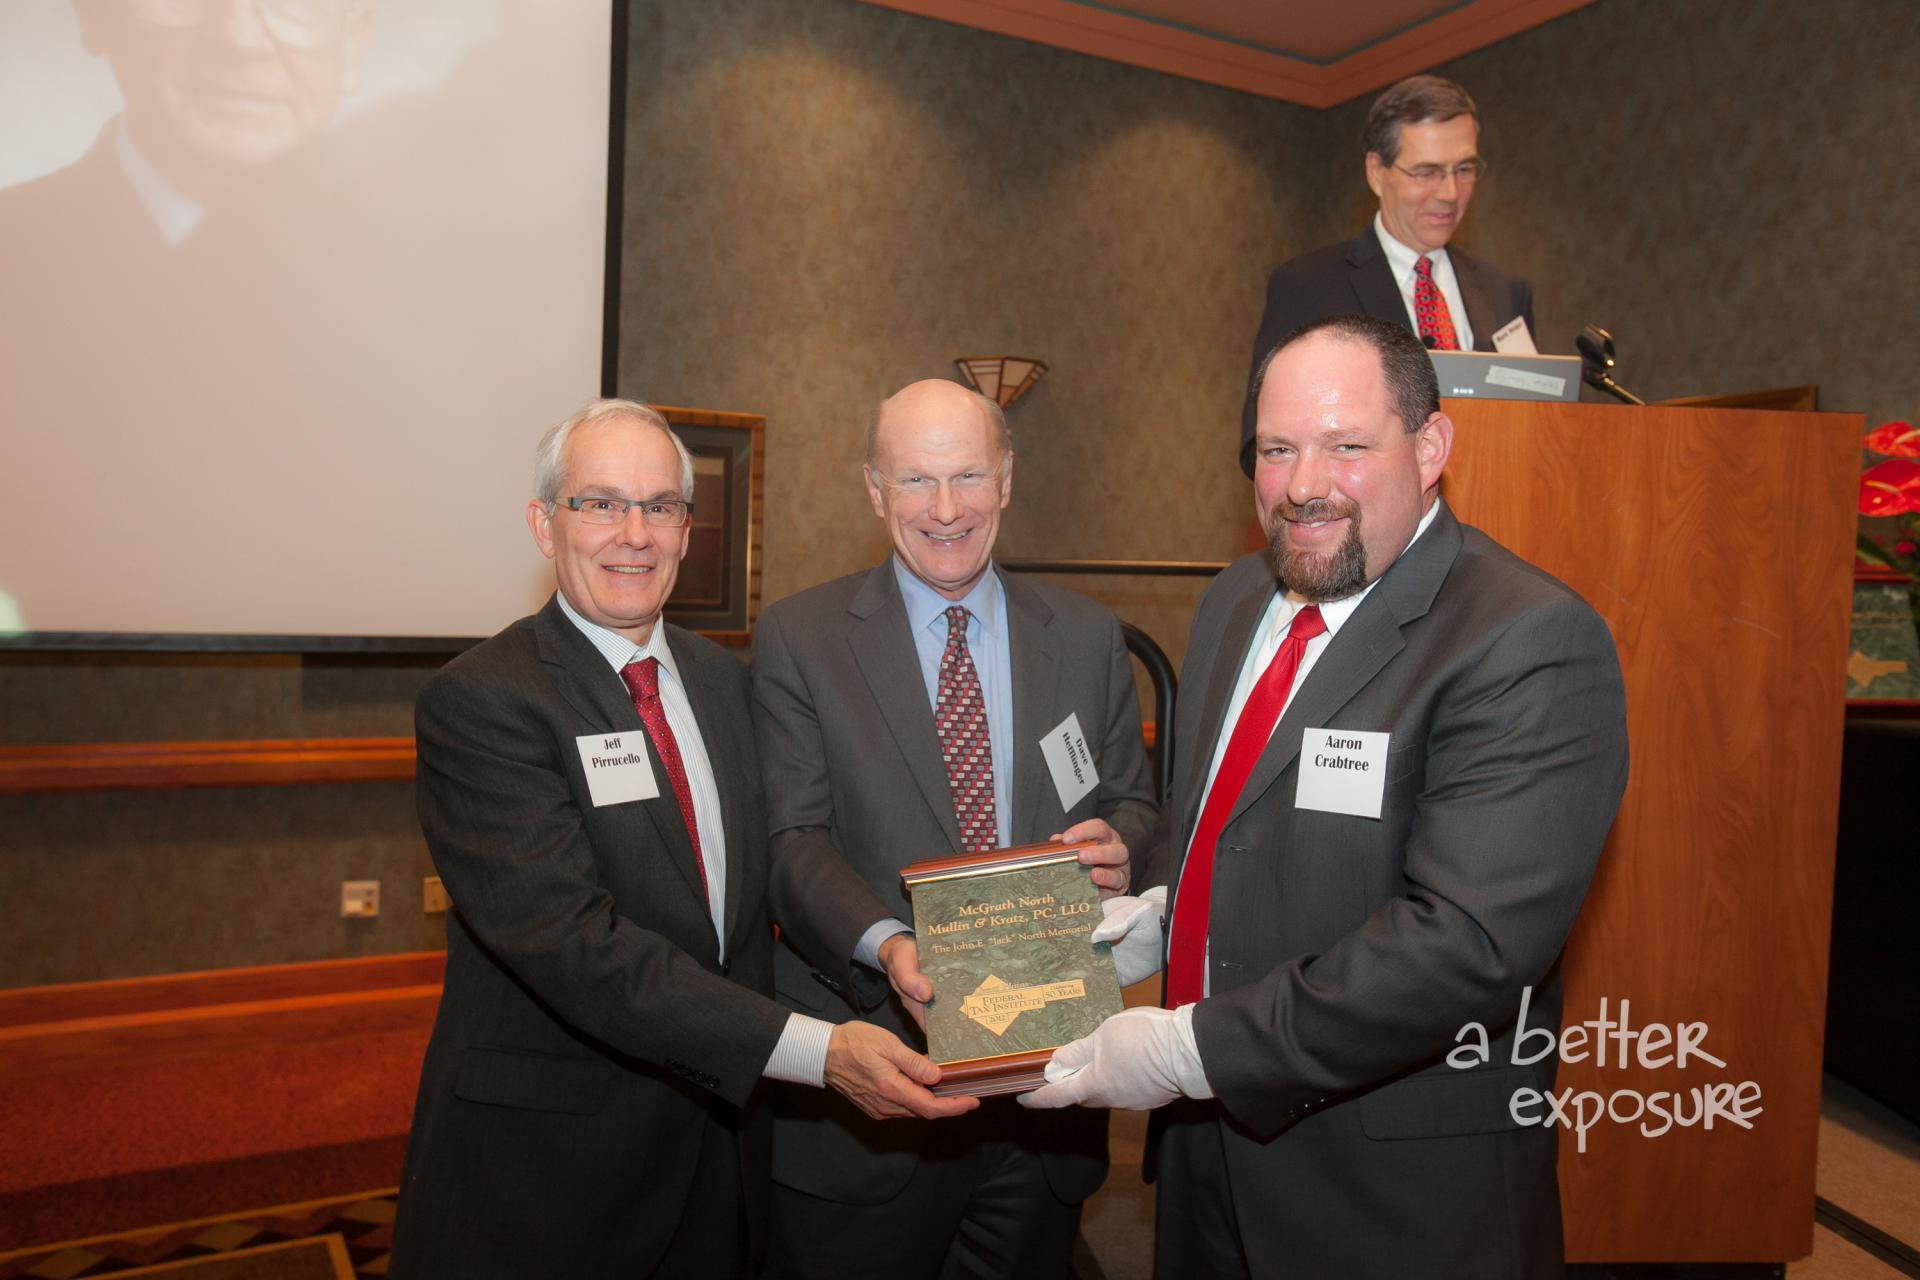 President Aaron Crabtree presents Jeff Pirruccello and David Hefflinger with a plaque